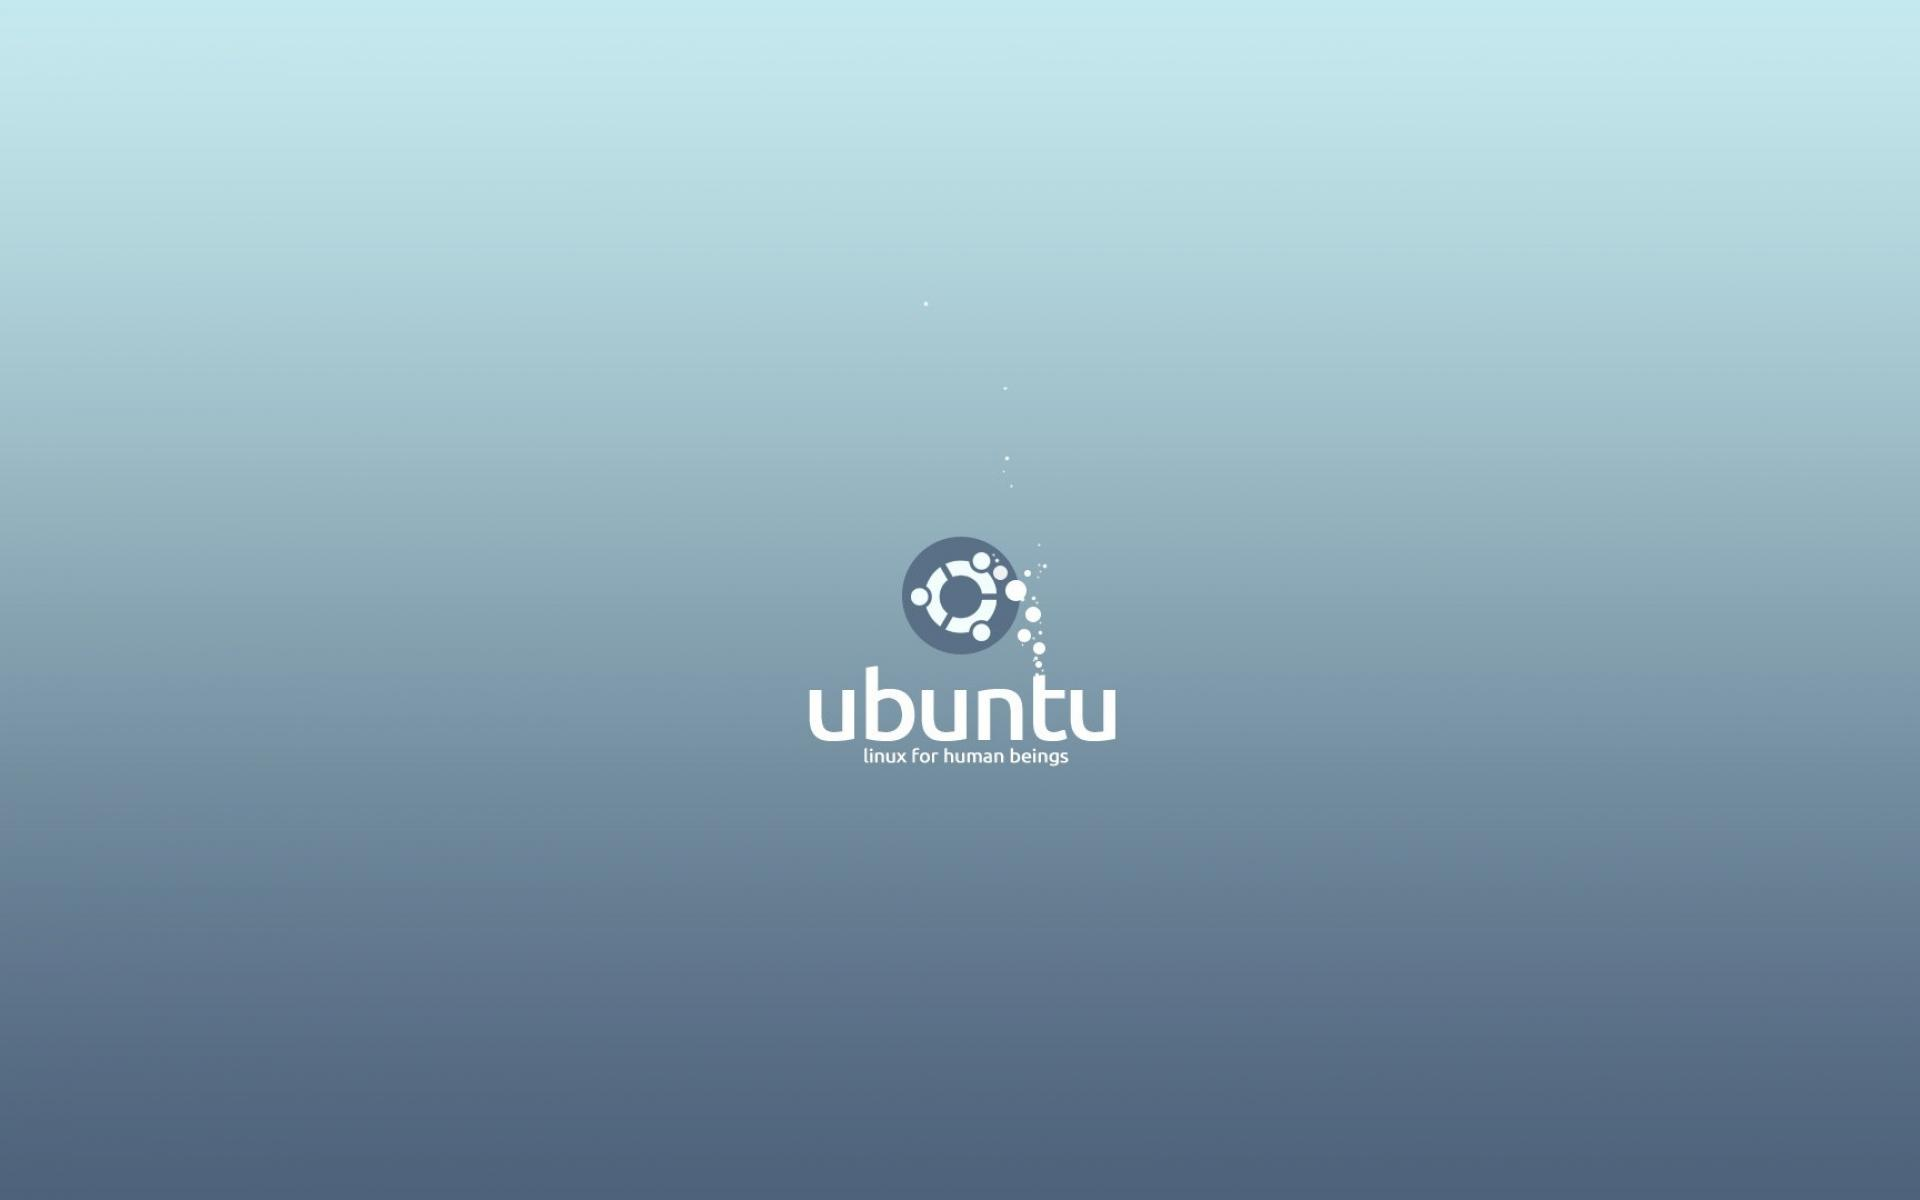 linux ubuntu logos minimalistic best widescreen background awesome HQ 1920x1200